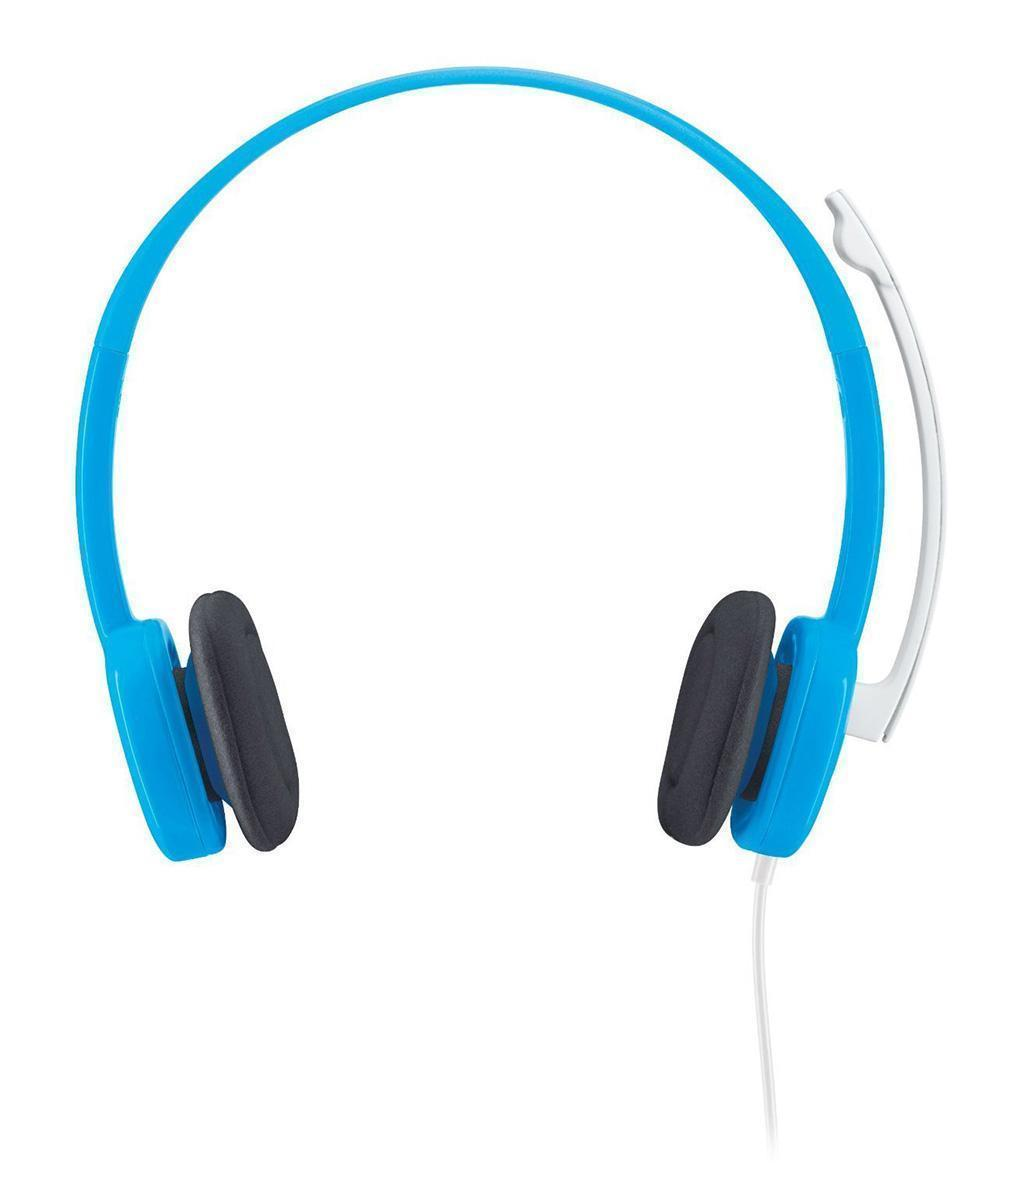 Logitech Stereo Headset H150, Blueberry (981-000368) - Офисные гарнитуры